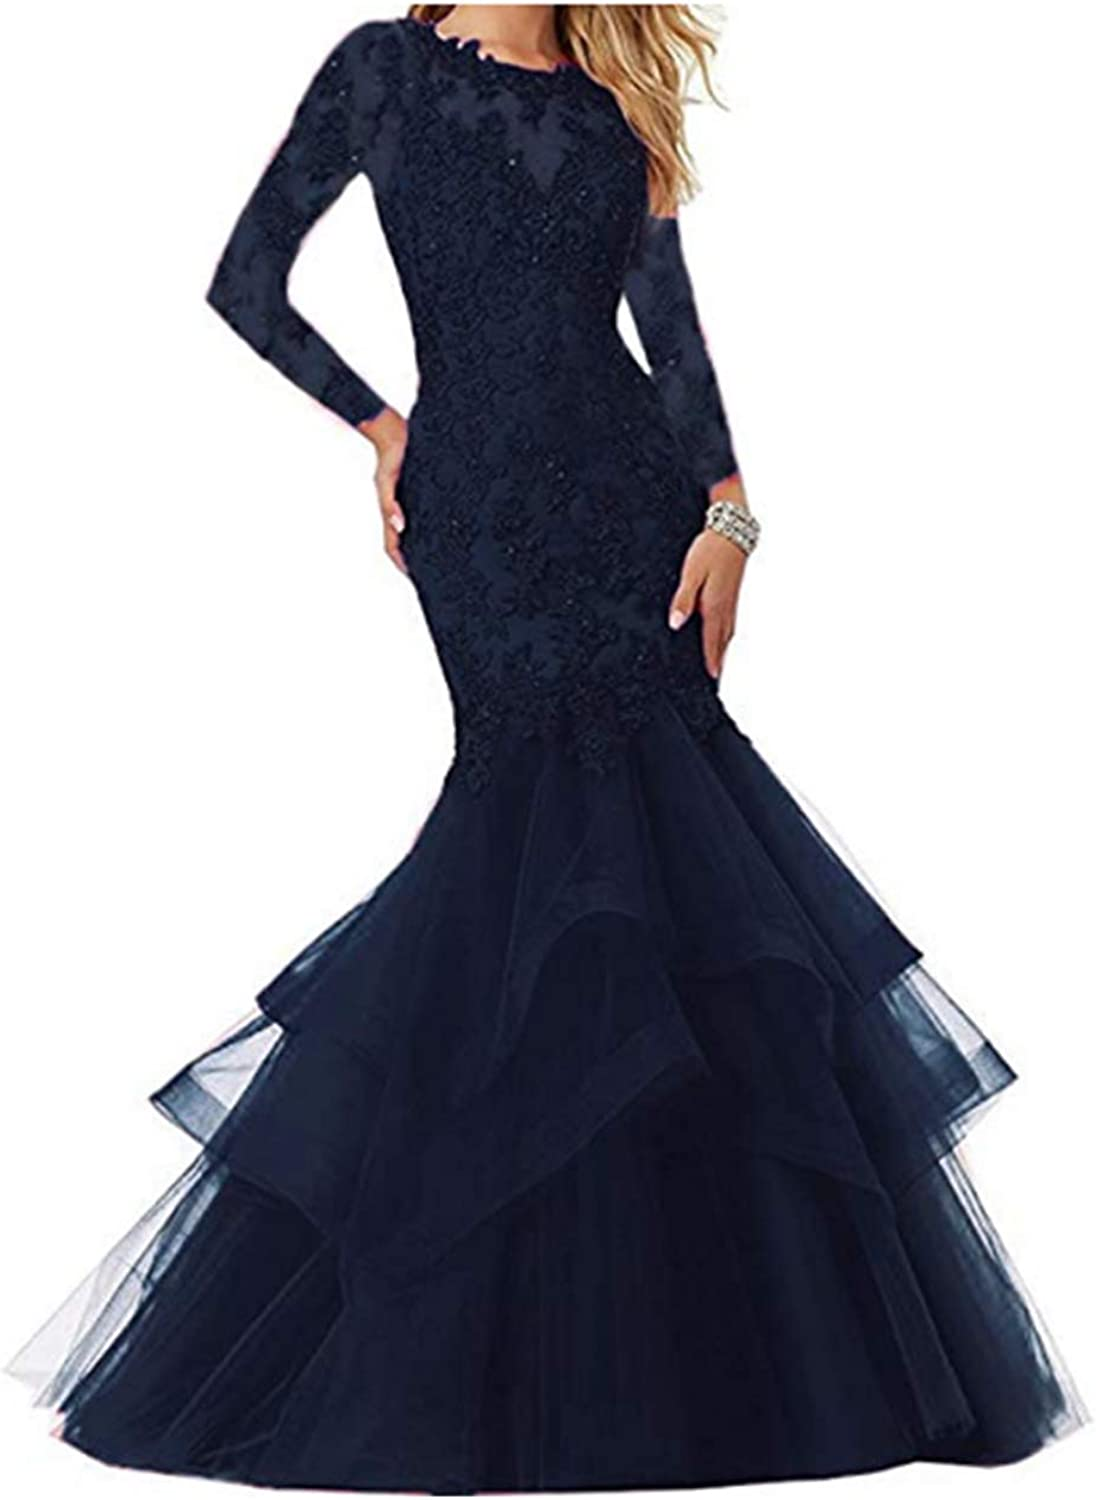 FWVR Women's Mermaid Appliques Prom Dresses Long Sleeves Evening Wedding Party Gowns